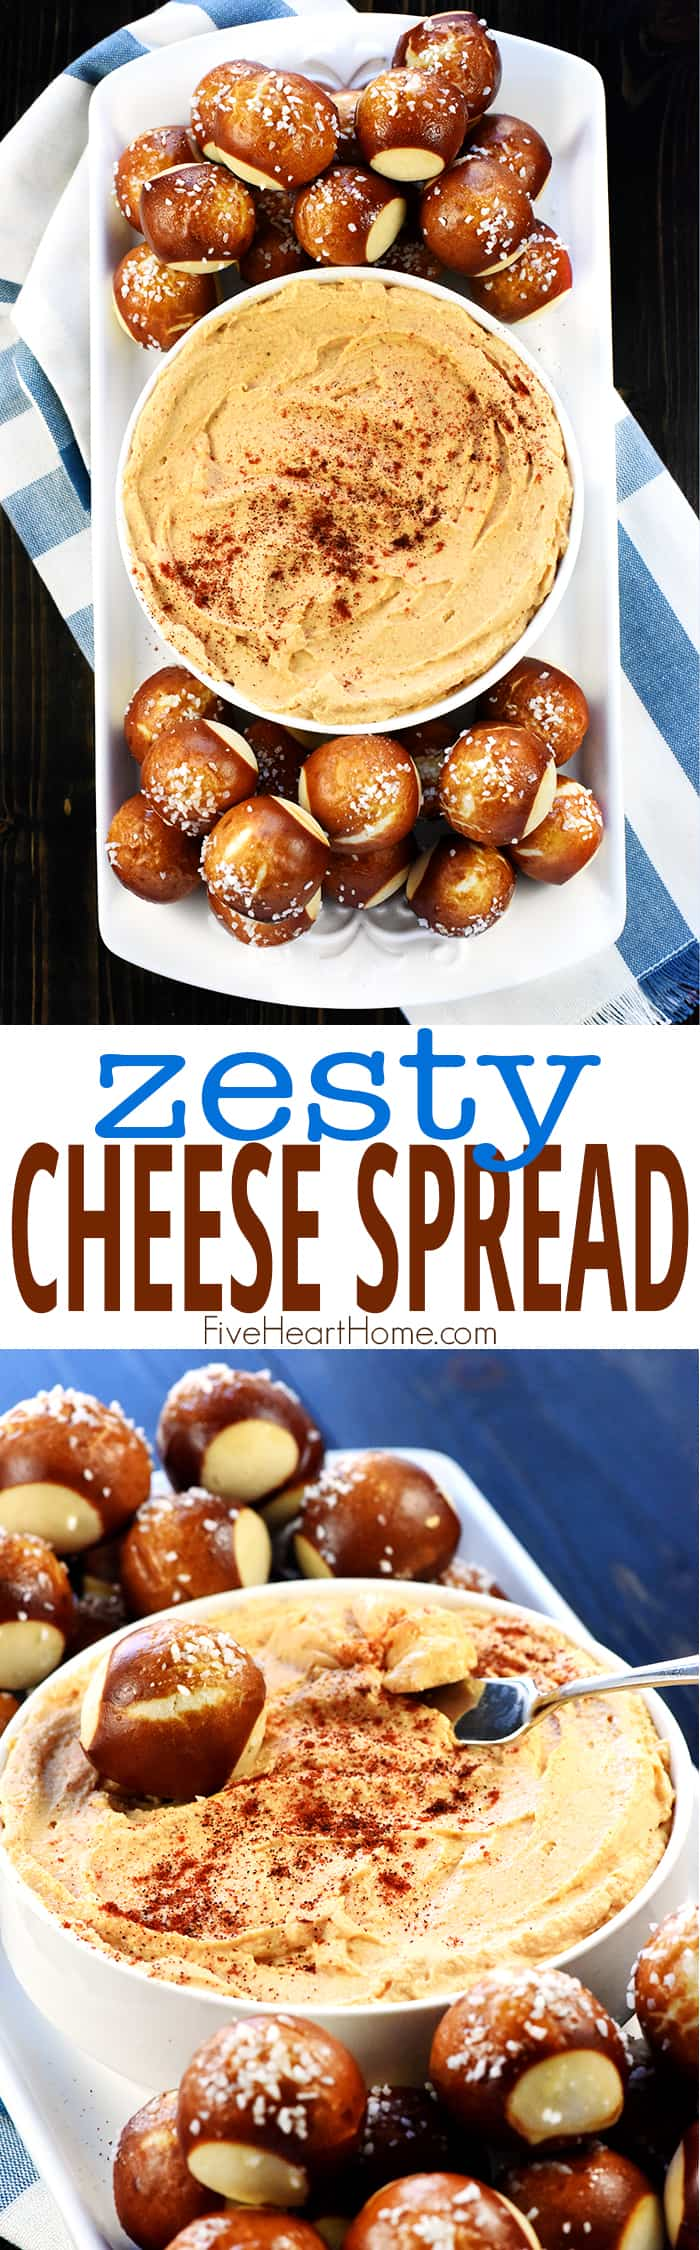 Zesty Cheese Spread photo collage with text overlay